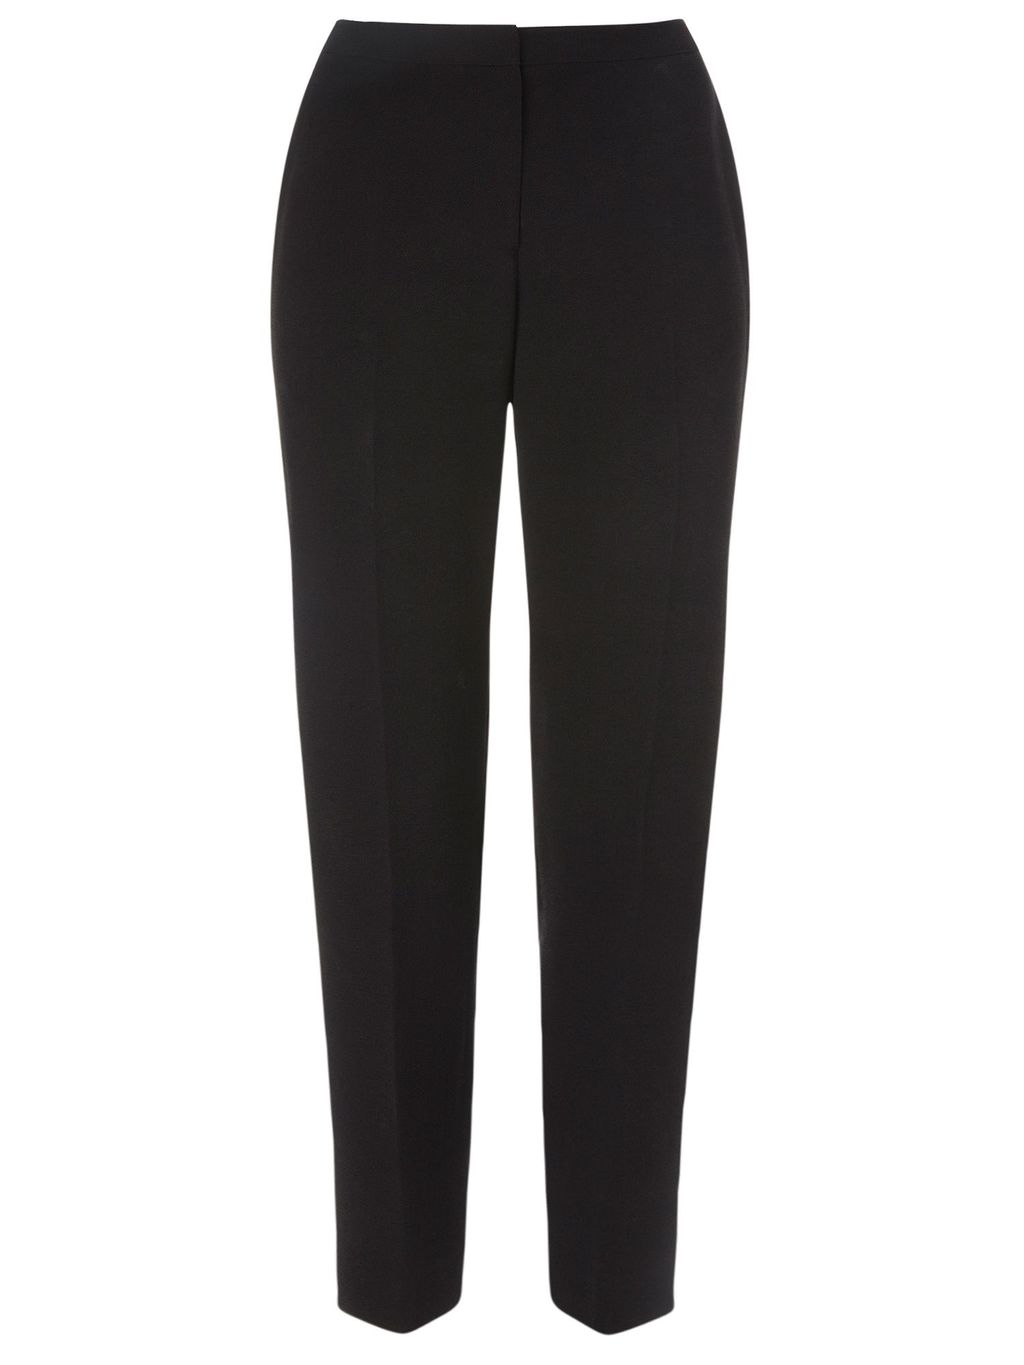 Vivienne Tailored Trouser, Black - length: standard; pattern: plain; waist: high rise; predominant colour: black; occasions: work; fibres: polyester/polyamide - 100%; fit: straight leg; pattern type: fabric; texture group: woven light midweight; style: standard; season: a/w 2015; wardrobe: basic